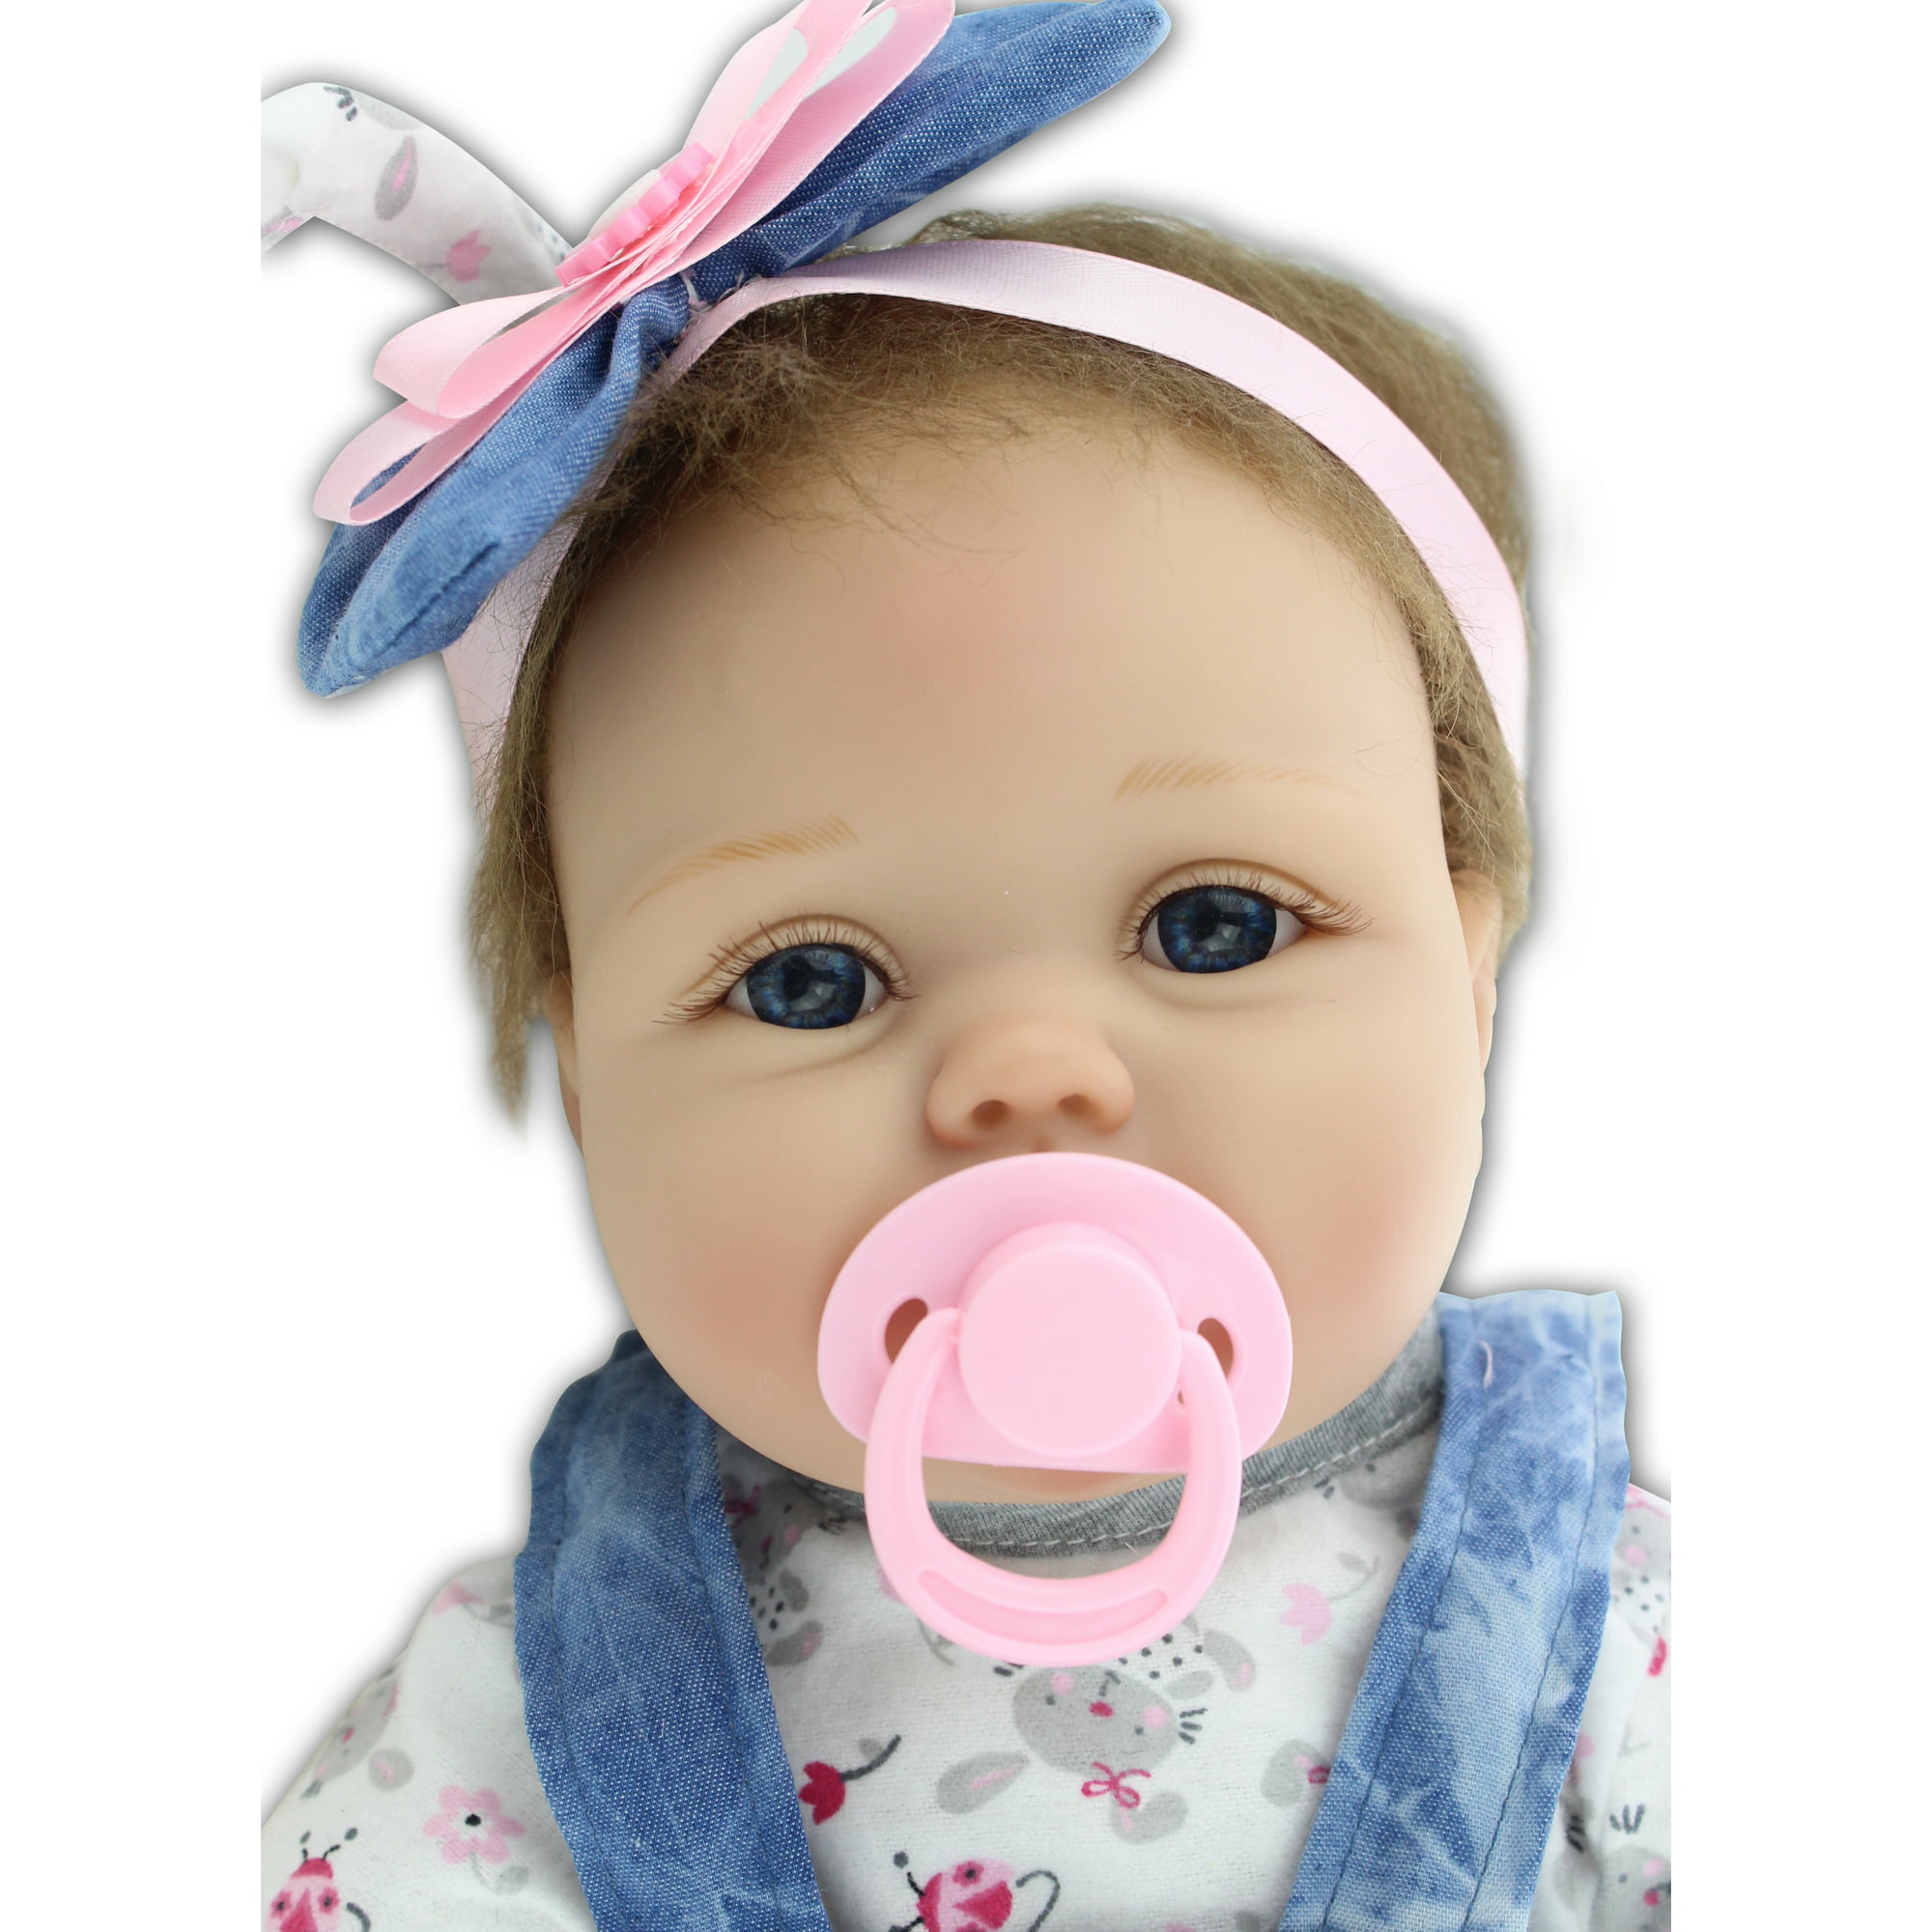 Reborn Baby Doll Soft Silicone 22inch 55cm Magnetic Lovely Lifelike Cute Lovely Baby Children Toy Gift Walmart Com Walmart Com